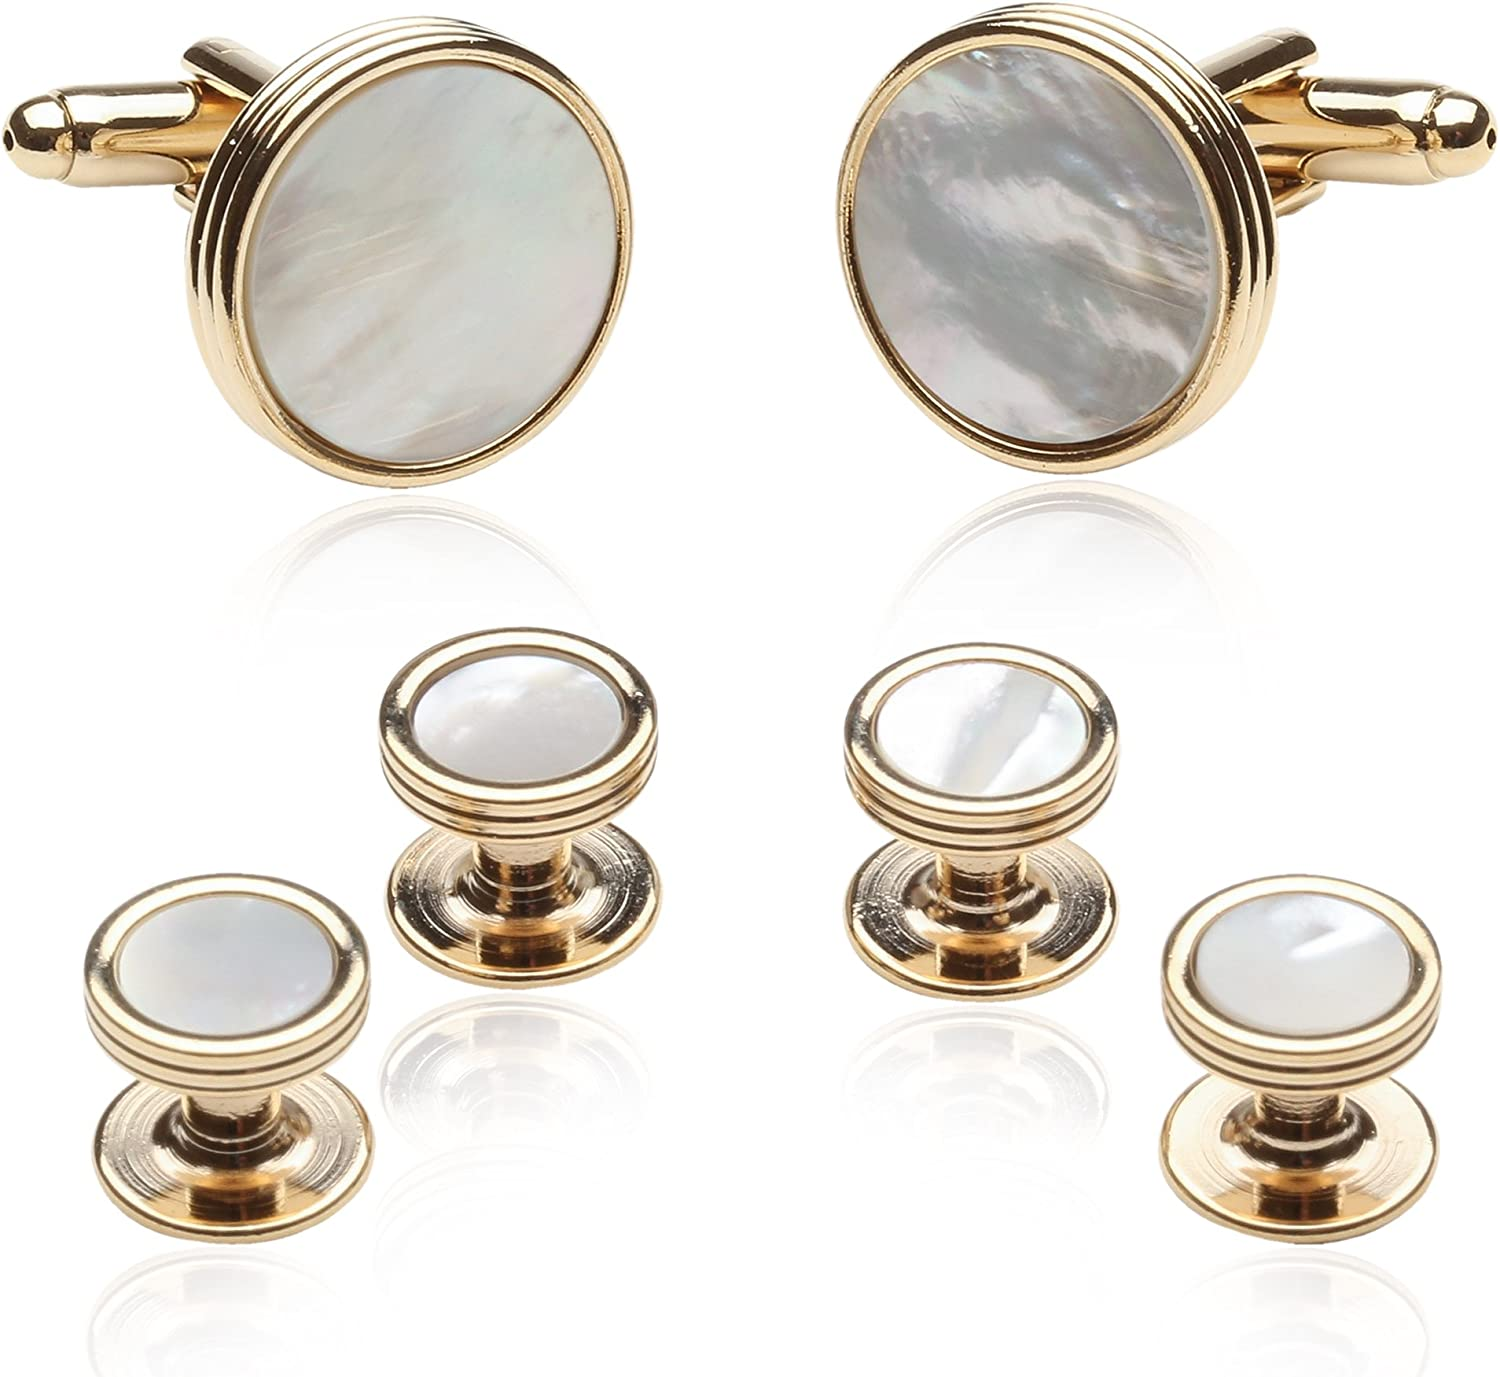 Cuff-Daddy Mother of Pearl and Gold Tuxedo Cufflinks and Studs Formal Set with Gift Box